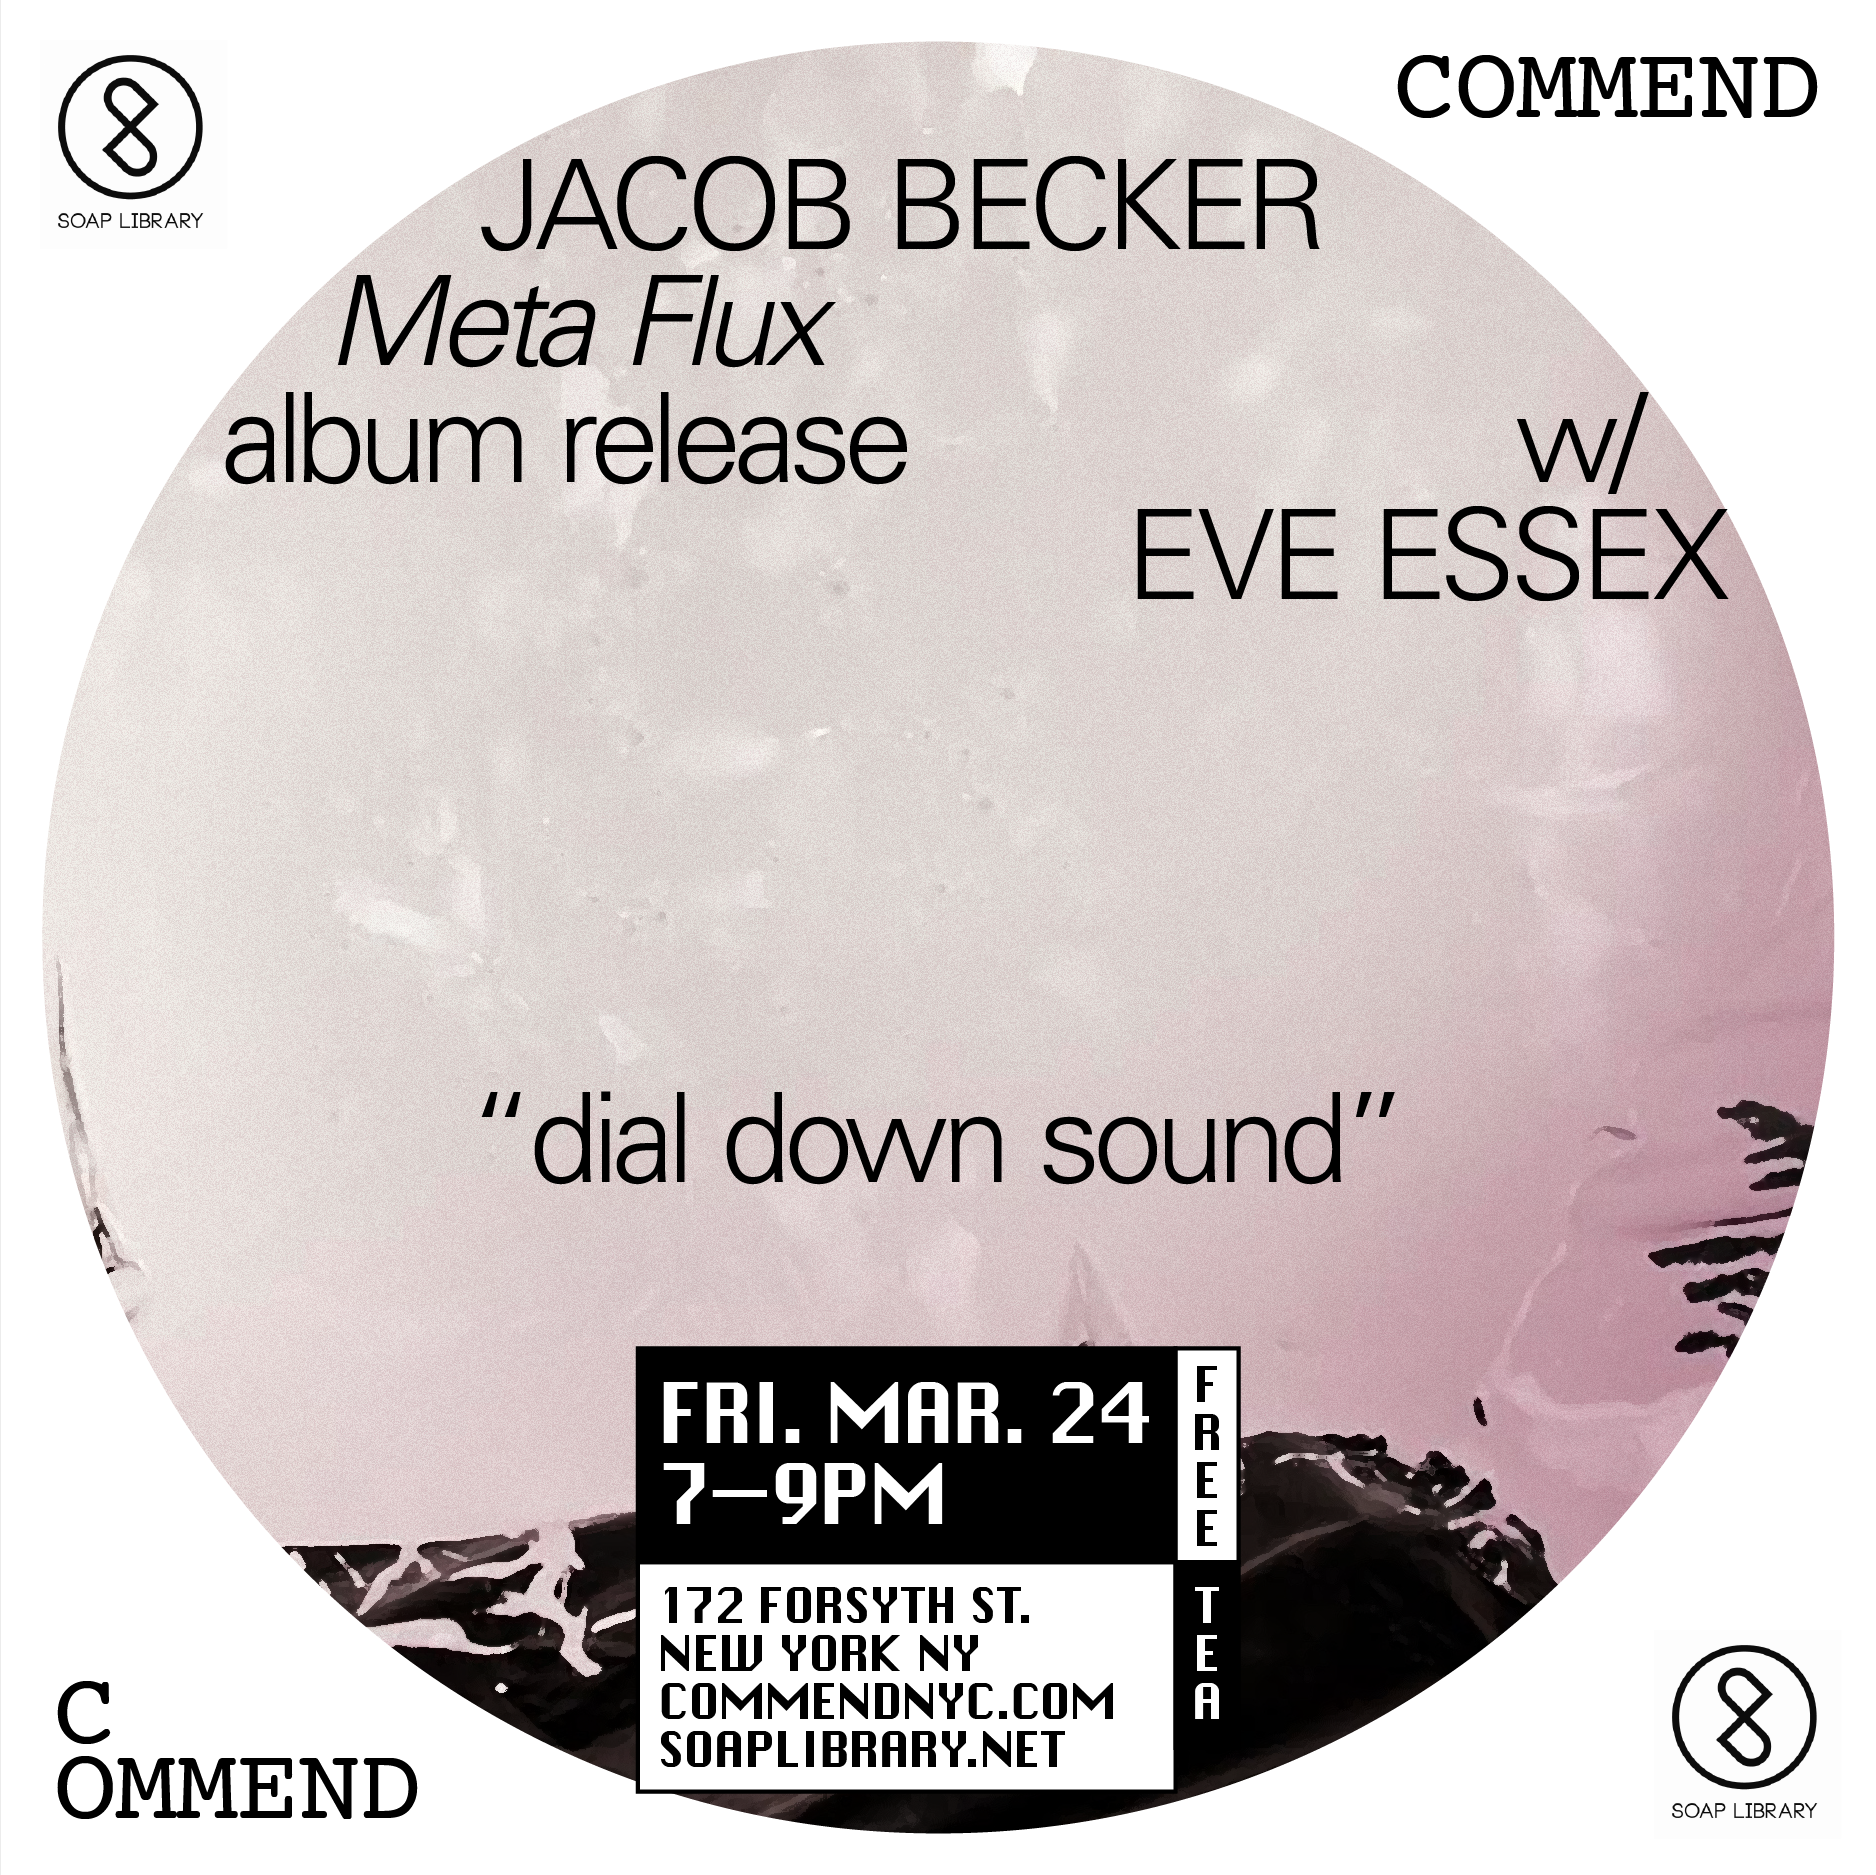 032417_JacobBecker_ReleaseShow_Commend.png